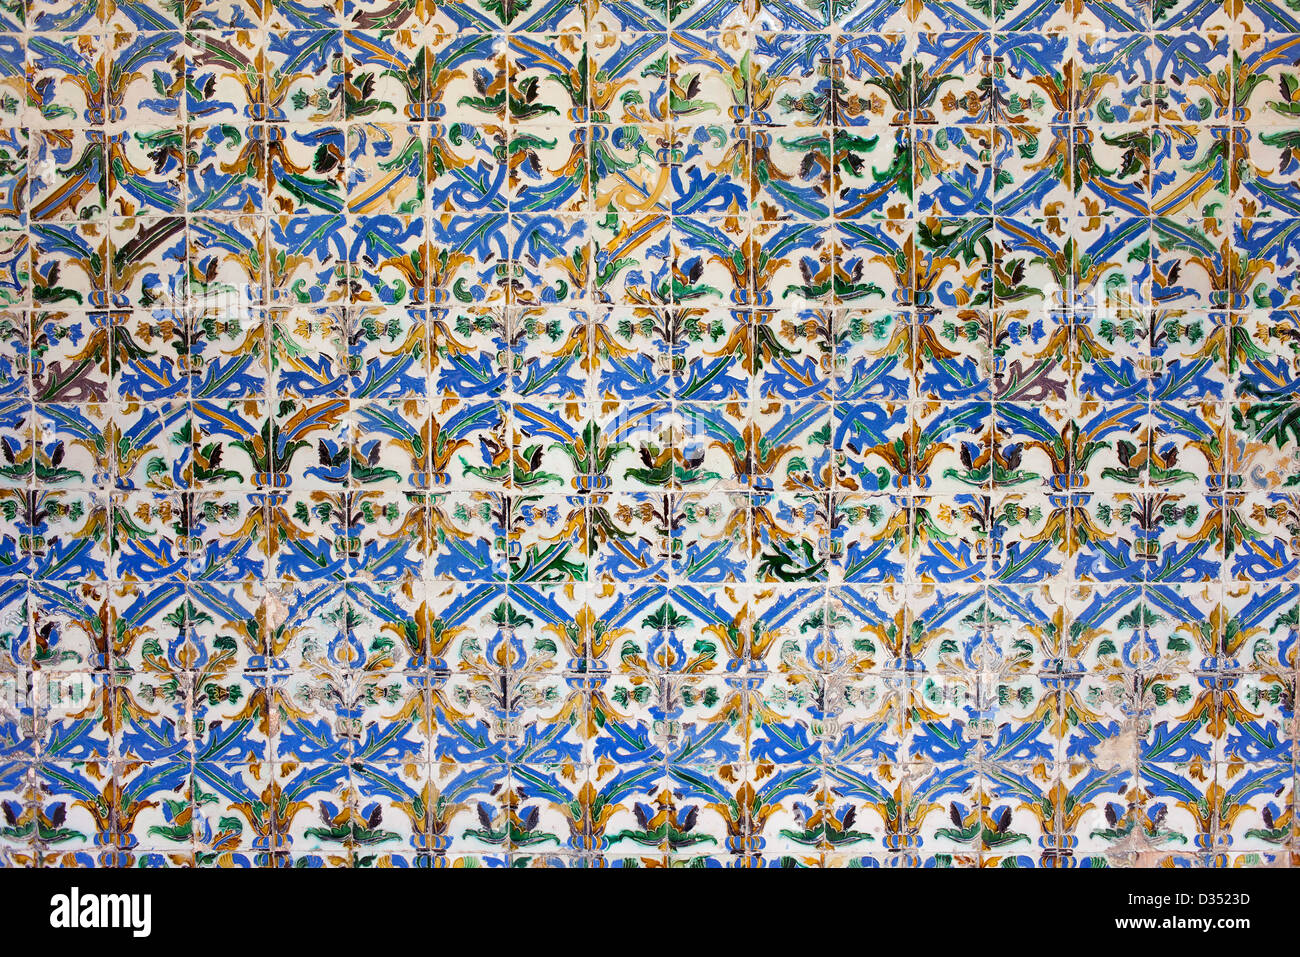 Old, historic Azulejos tiles in the Mudejar Style, Real Alcazar, Seville, Spain, Andalusia region. - Stock Image